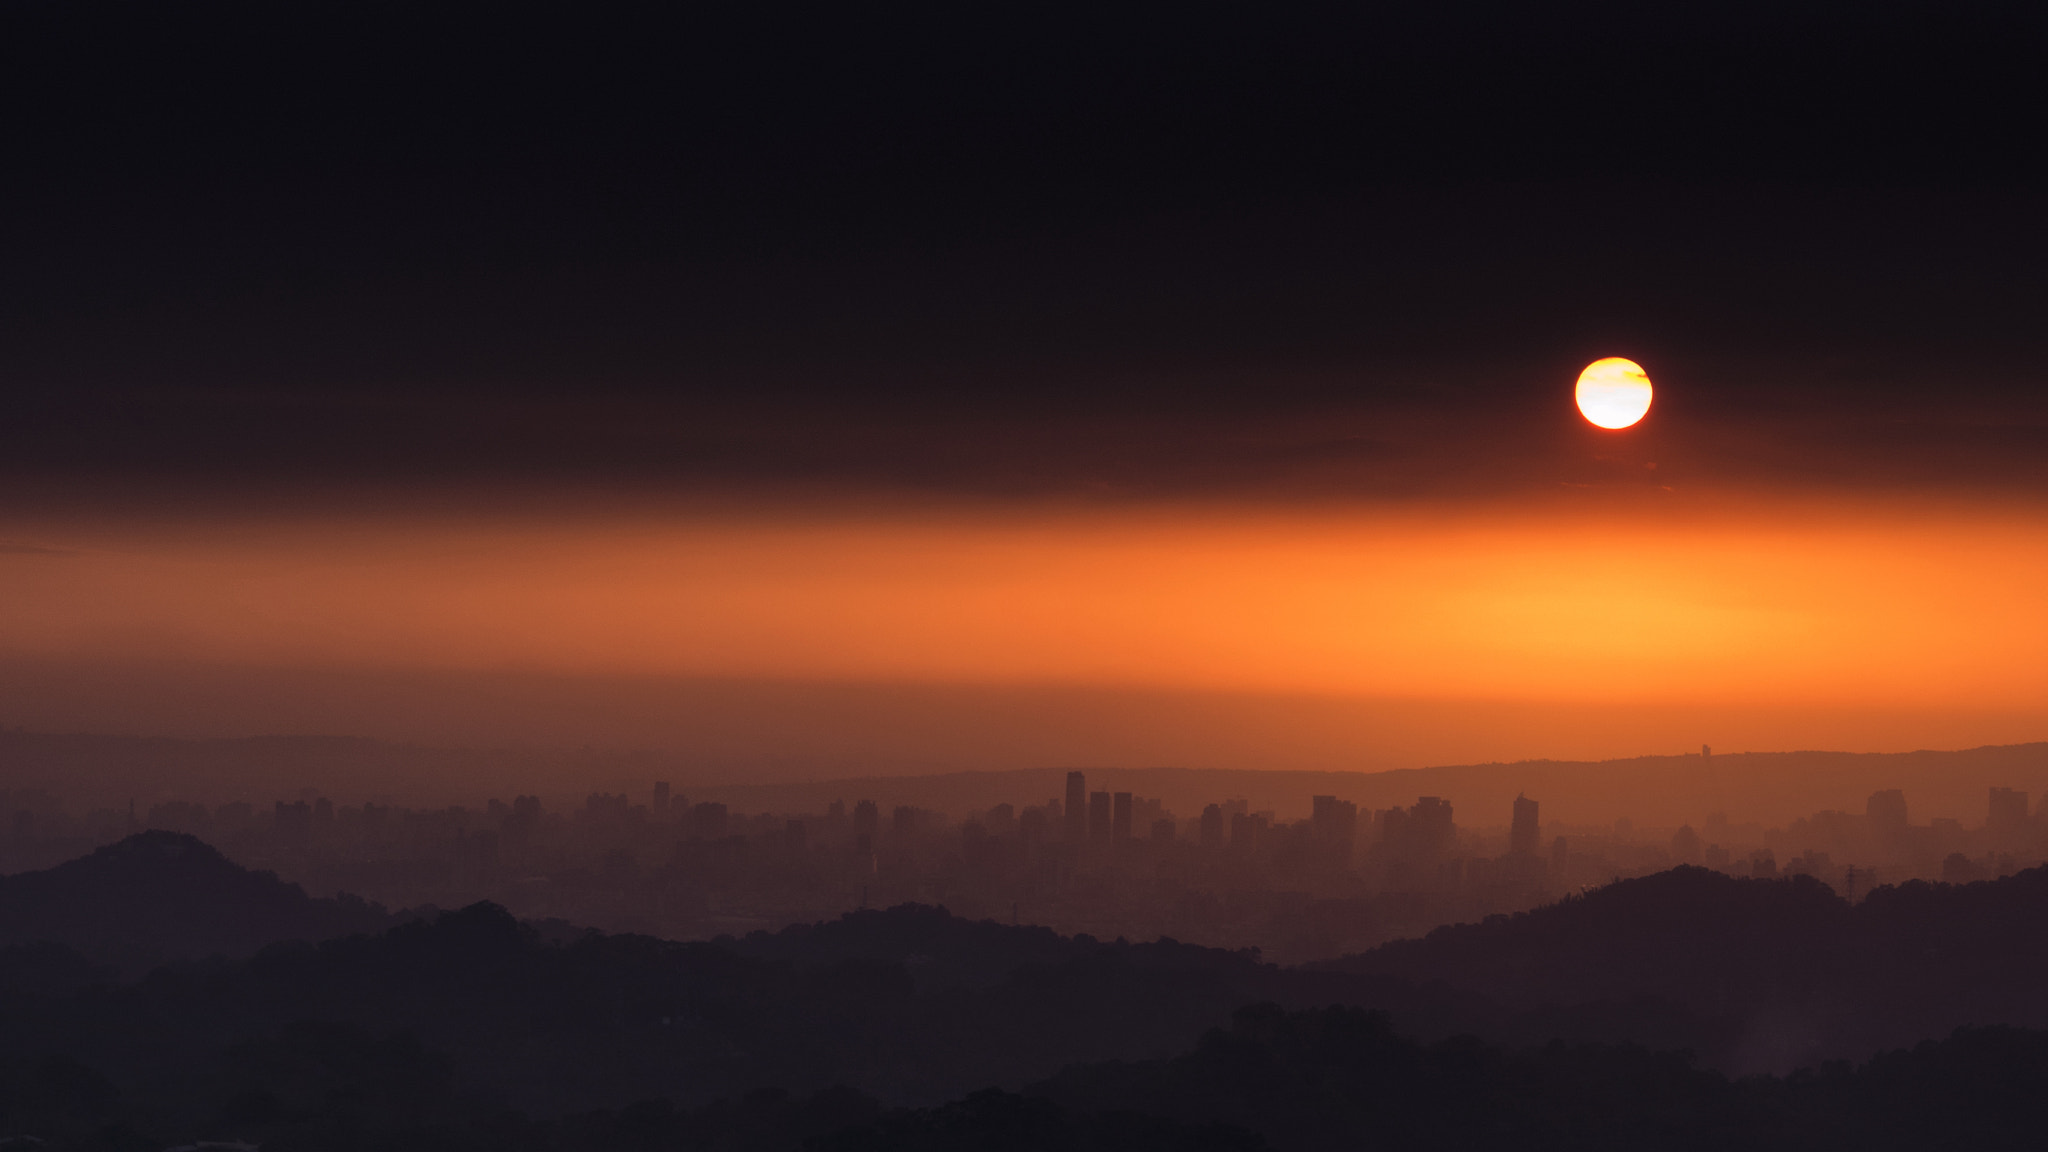 Photograph Sunset by saint huang on 500px